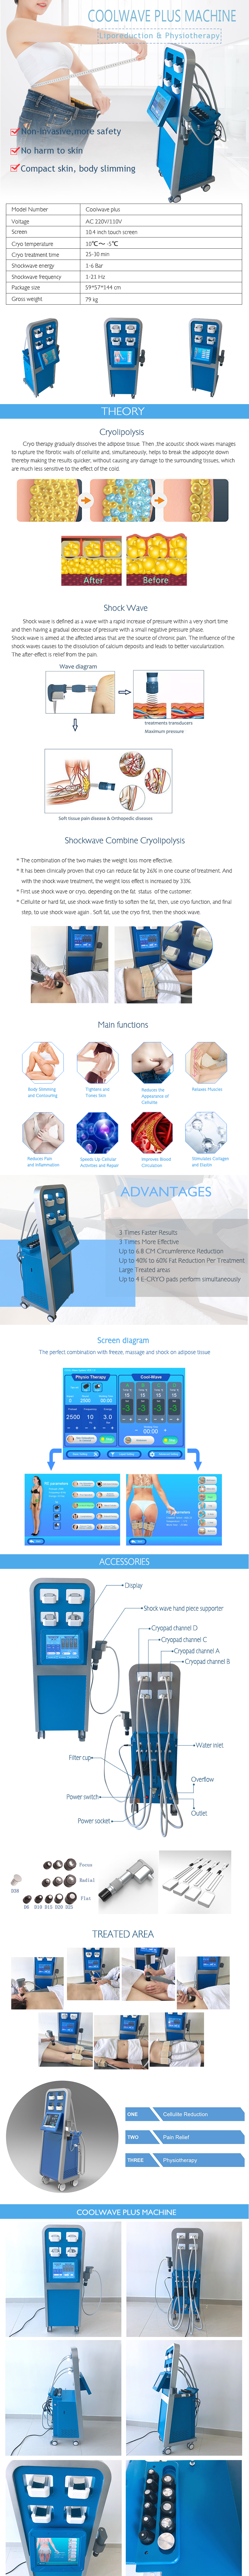 COOLWAVE PLUS Shockwave Therapy Cryolipolysis Machine product details